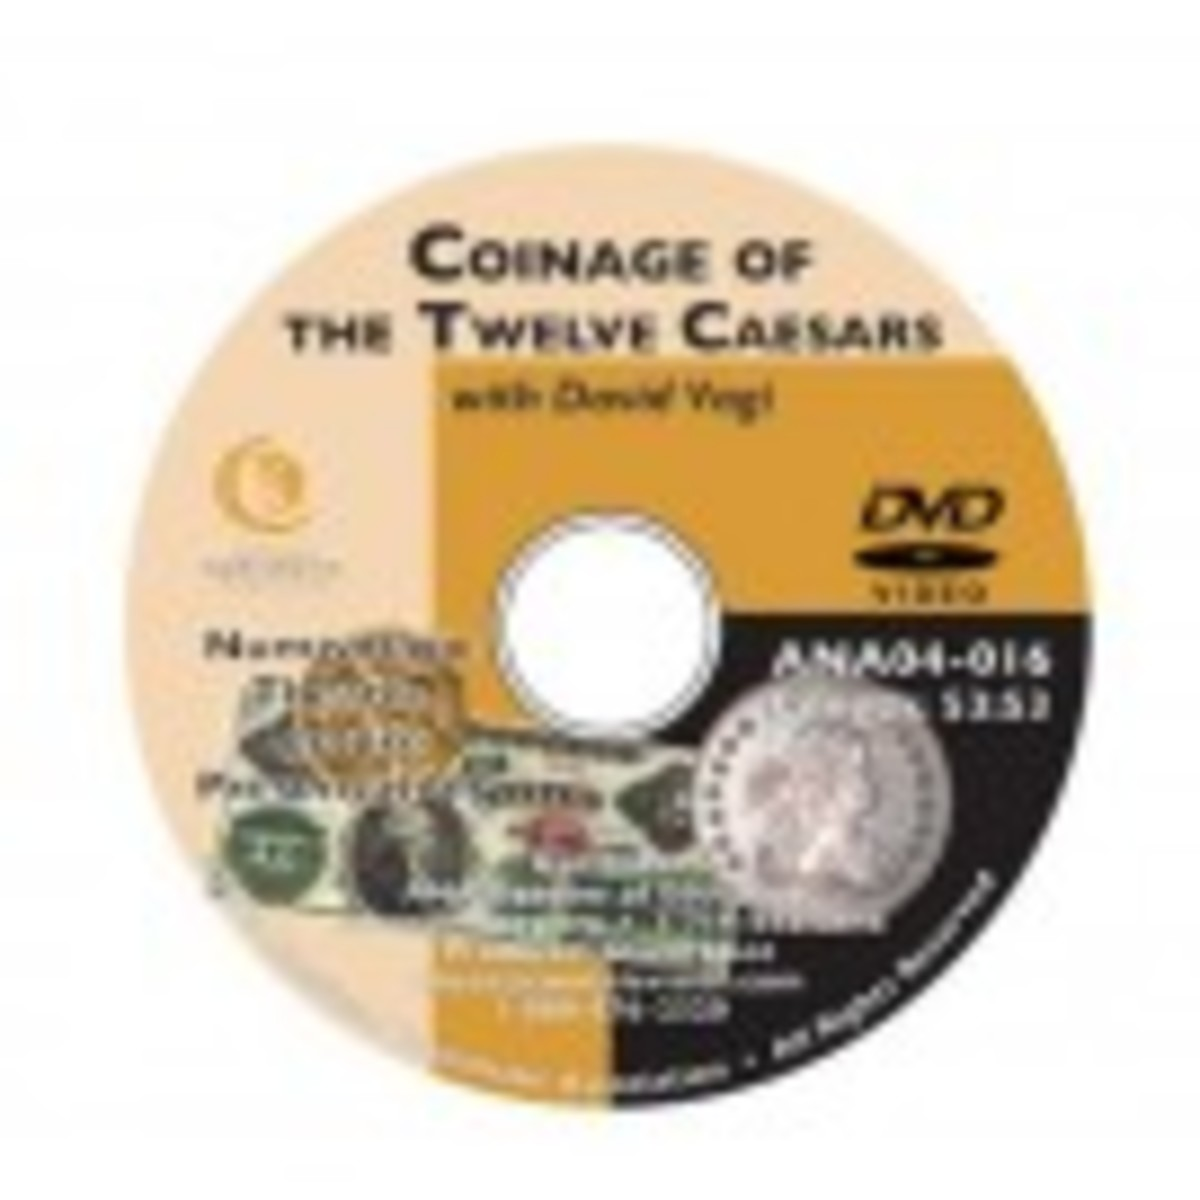 Discover how easy it is to collect many types of ancient coins.